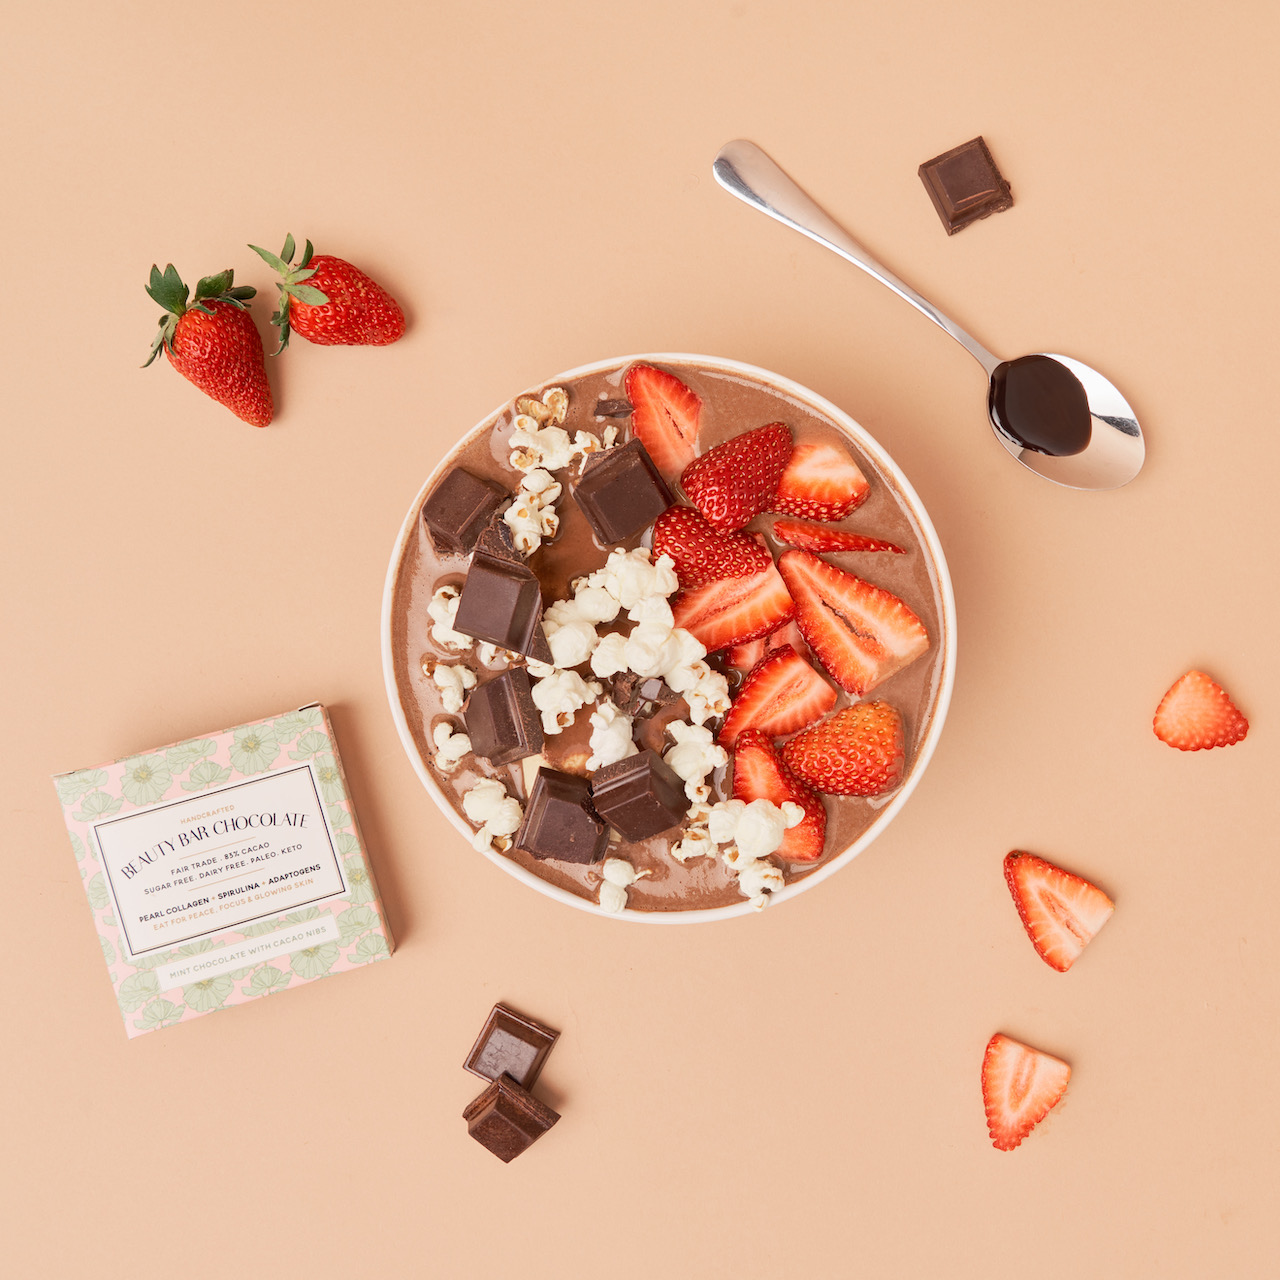 Beauty Bar Chocolate Image Nailed It Chocolate Bowl with Strawberries and Popcorn